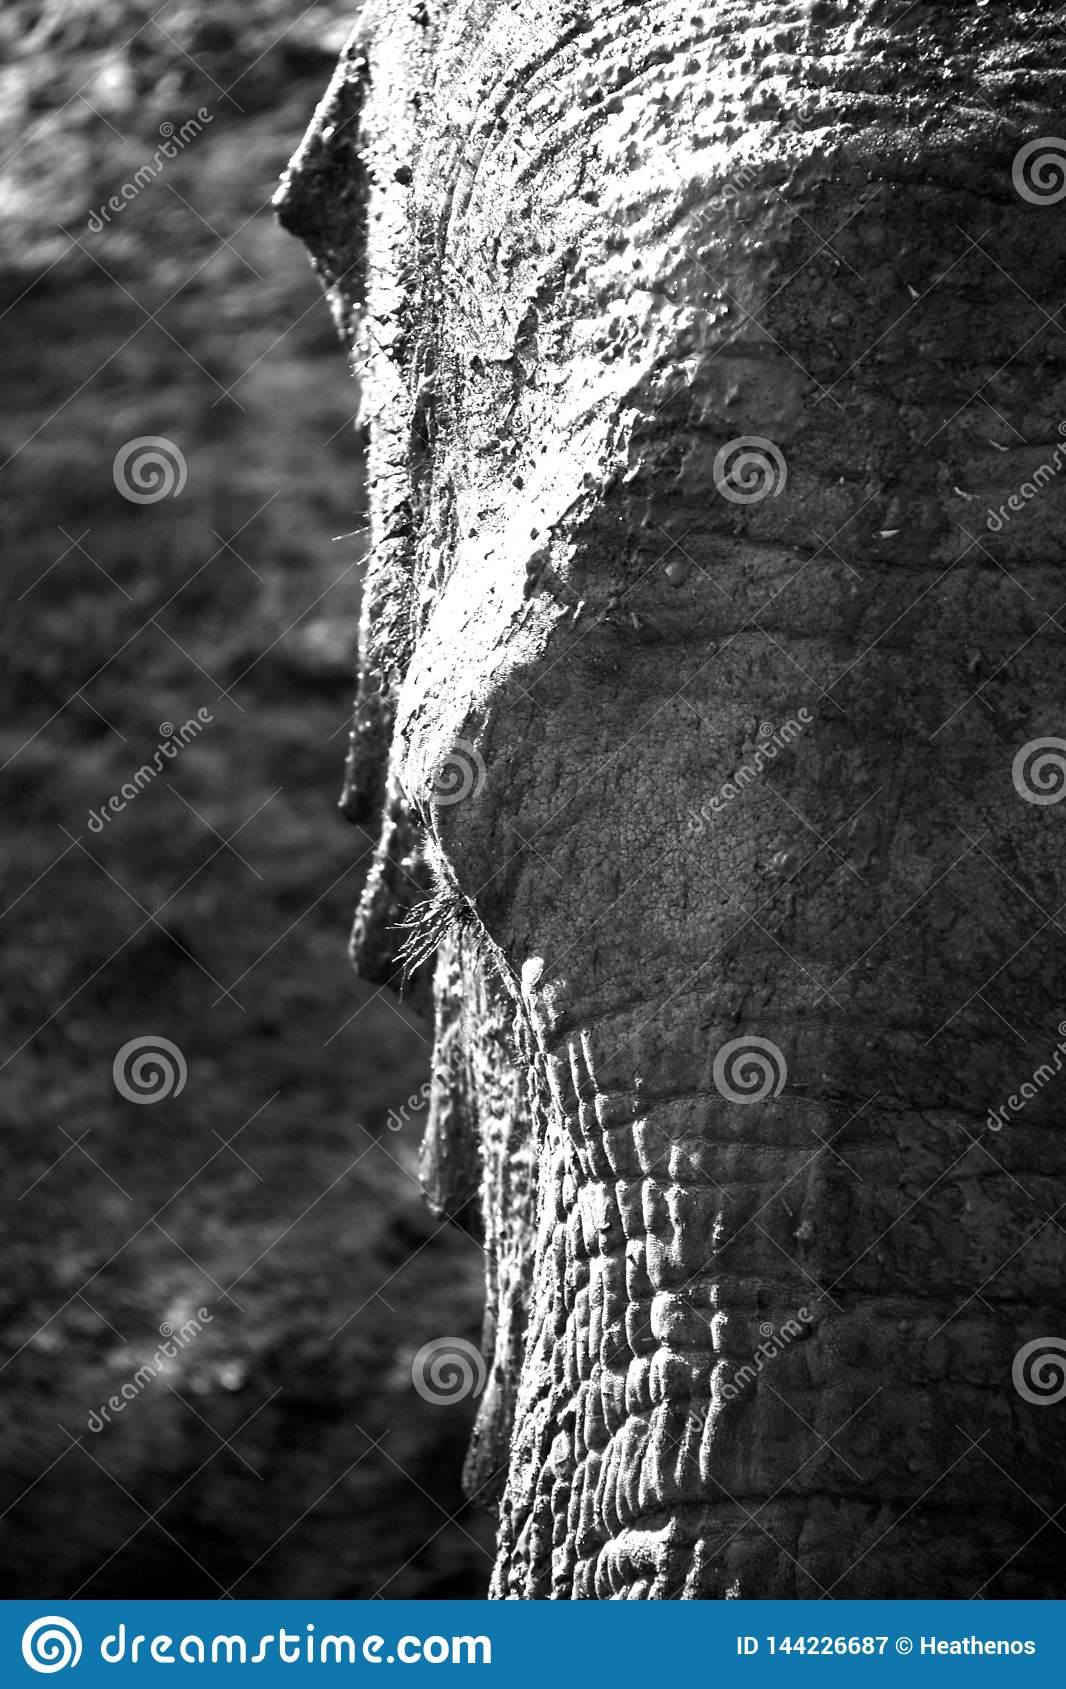 Black and white portrait of African elephant in high contrast